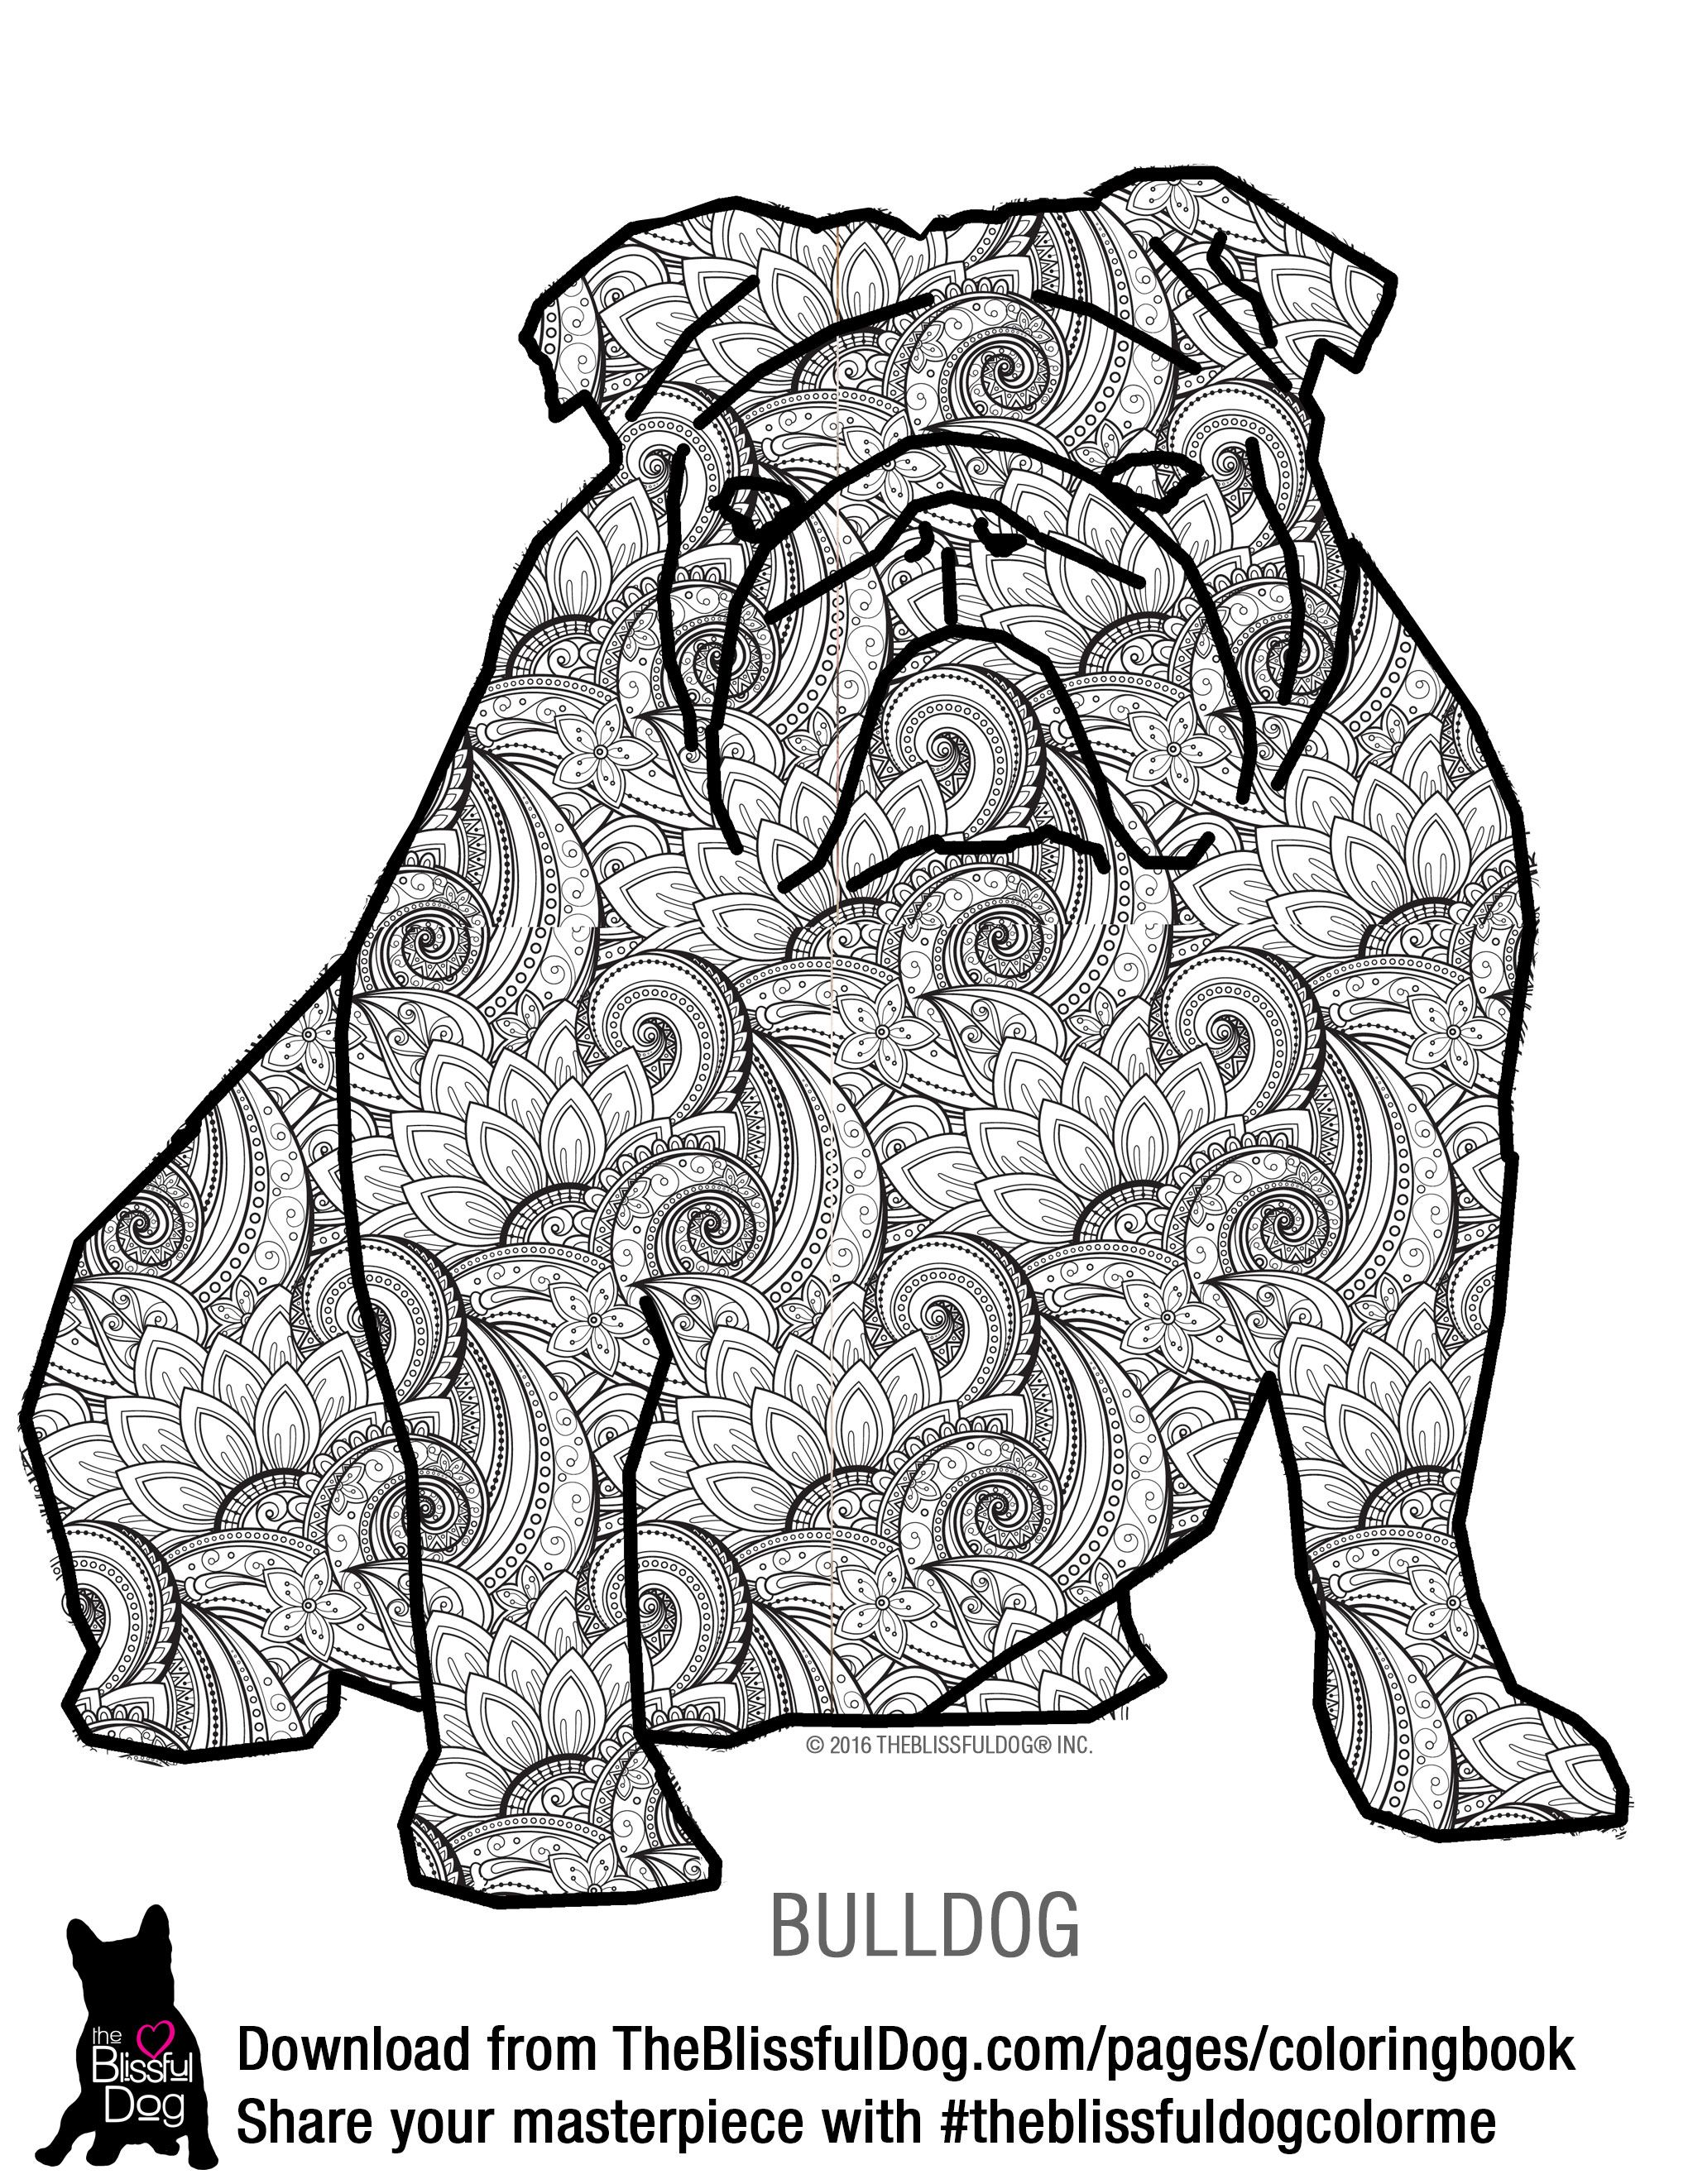 Here Is The Bulldog Coloring Book Page Big File For High Rez Coloring Pleasure Dog Coloring Page Animal Coloring Books Dog Coloring Book